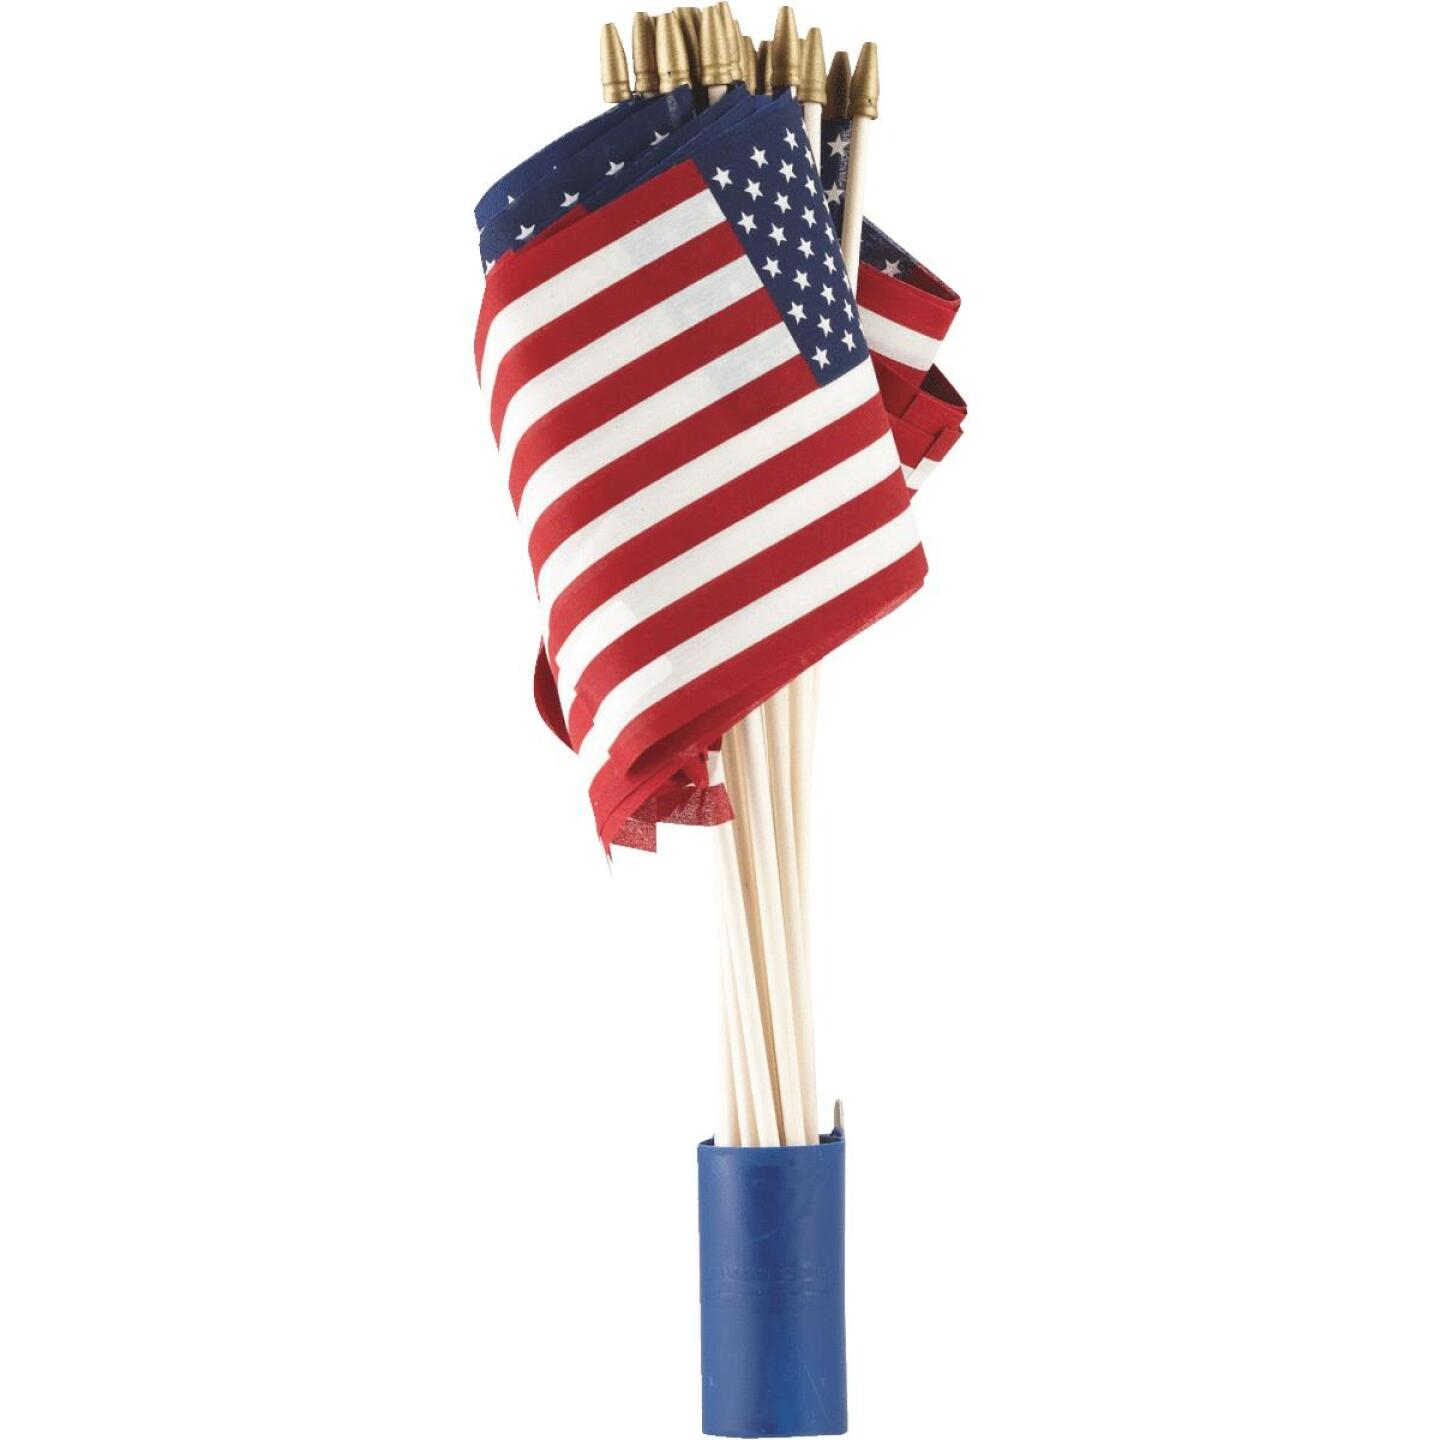 Valley Forge 8 In. x 12 In. Polycotton Stick American Flag Image 3